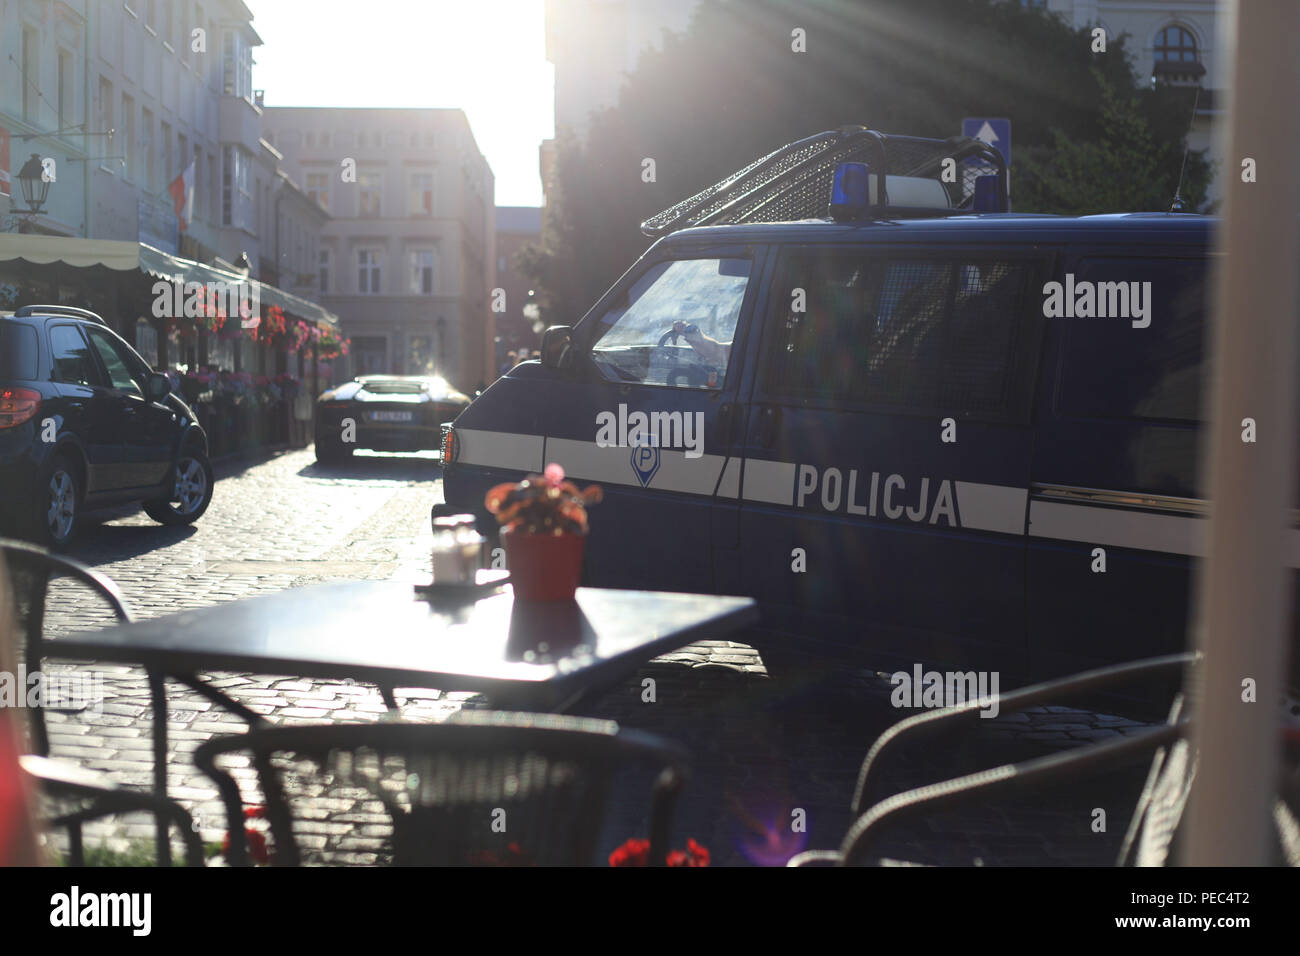 A police van in Bydgoszcz,Poland with a Lamborghini - Stock Photo